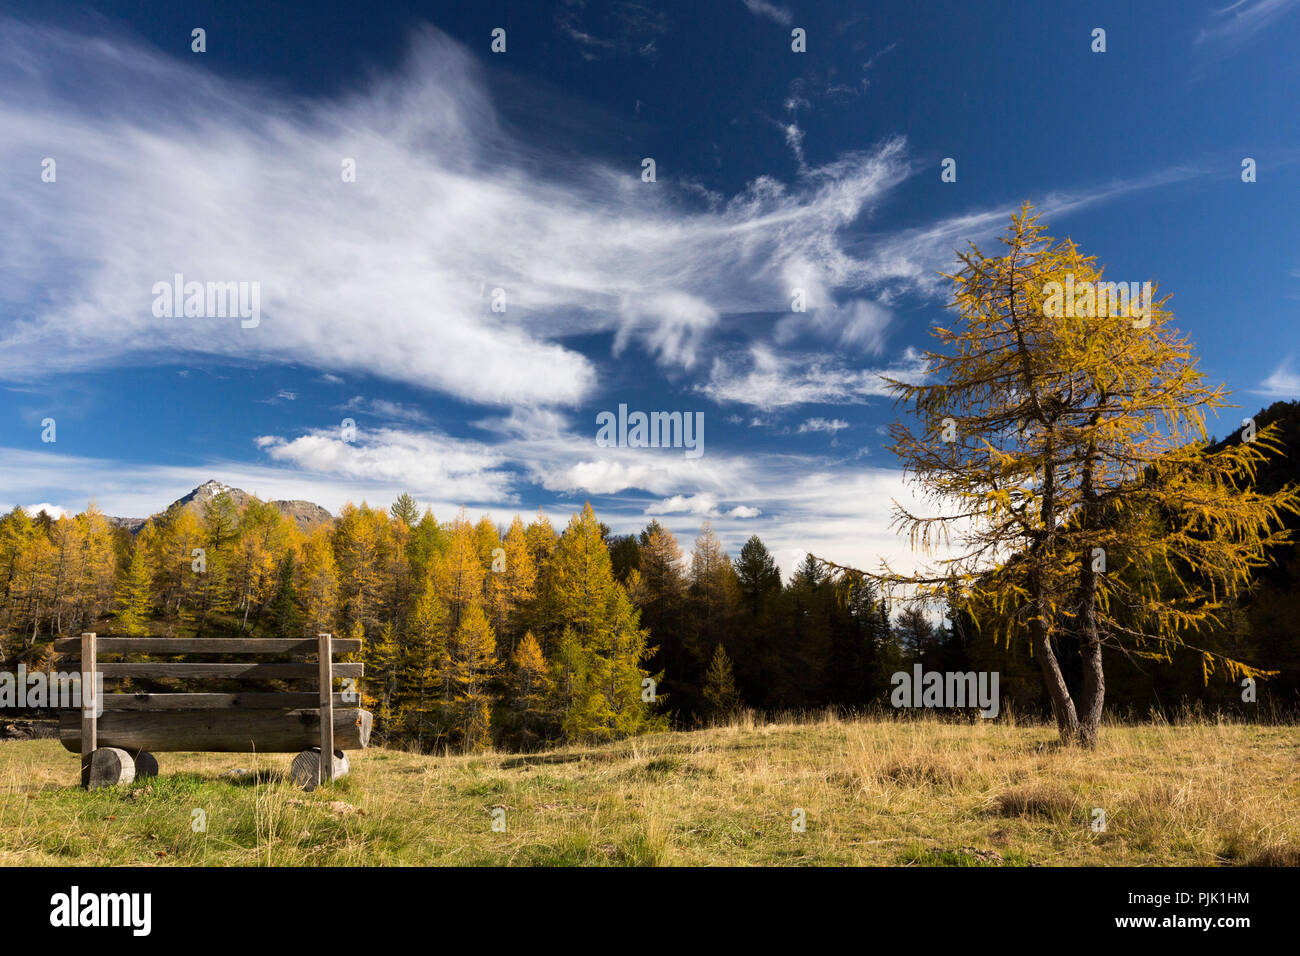 Light and shade determine the autumnal landscape at Lago Palü on Alp Grüm, canton of Grisons, Switzerland - Stock Image